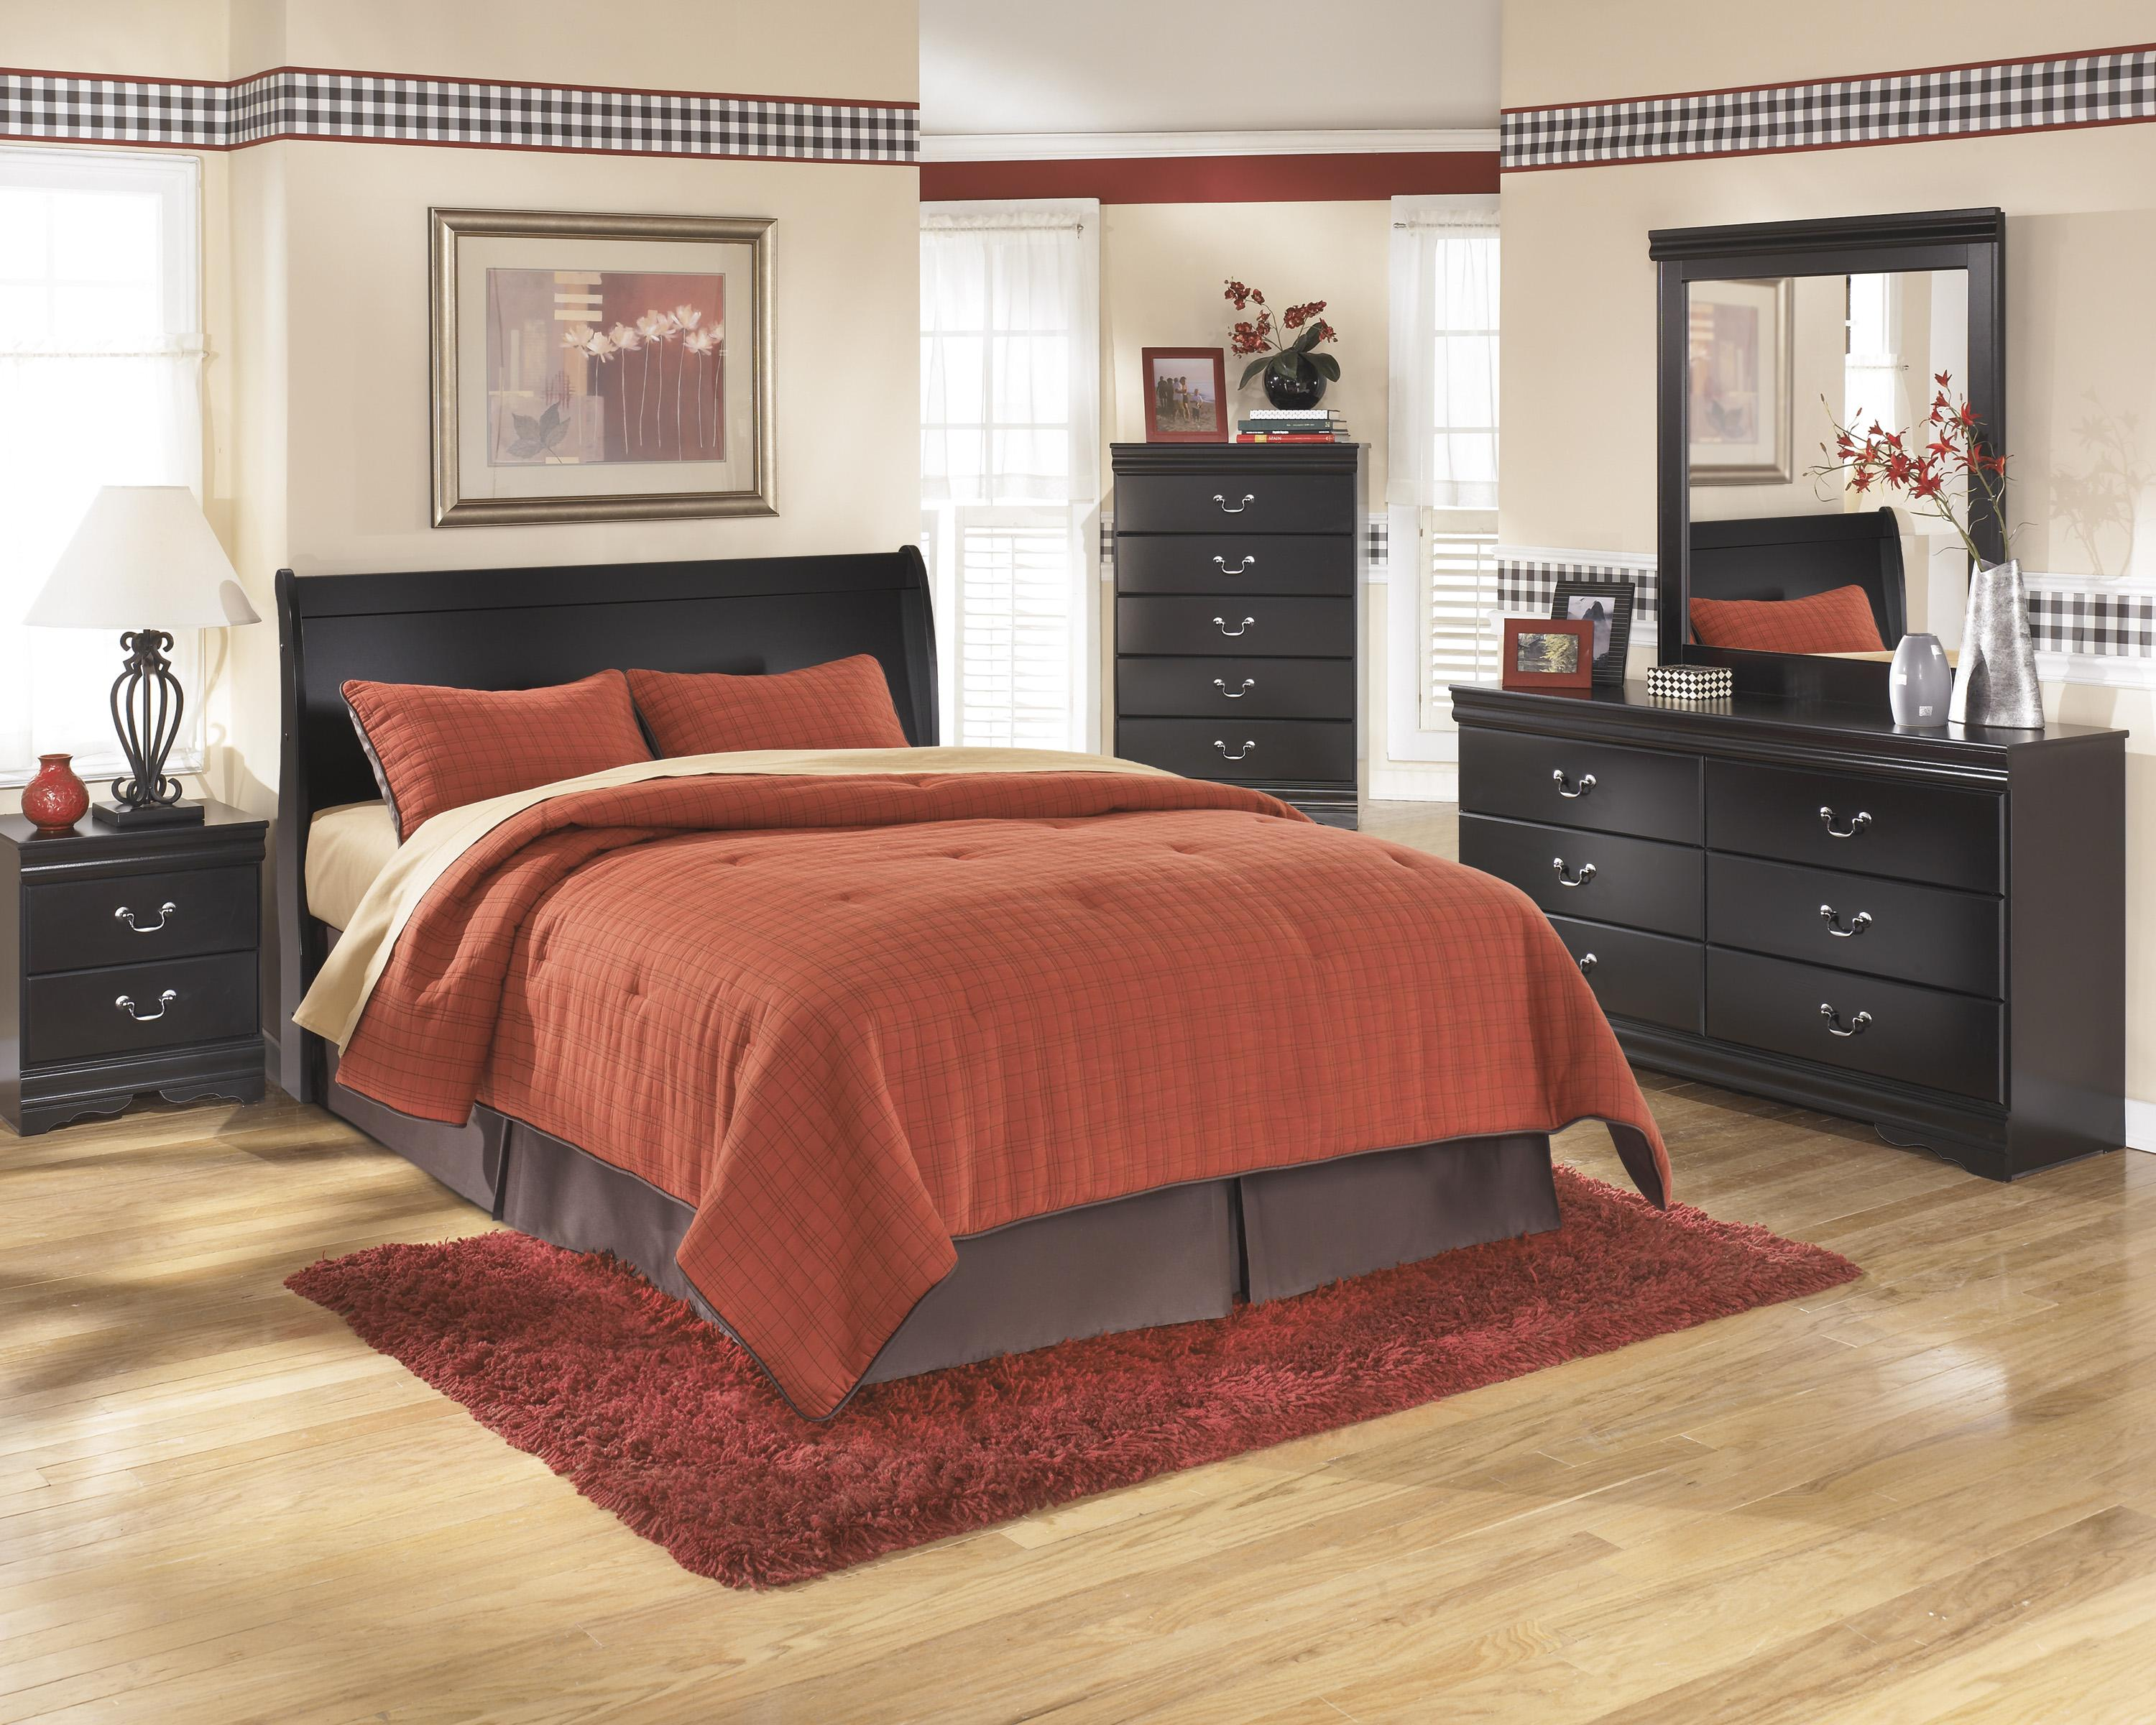 Signature Design by Ashley Huey Vineyard Queen Bedroom Group - Item Number: B128 Q Bedroom Group 2